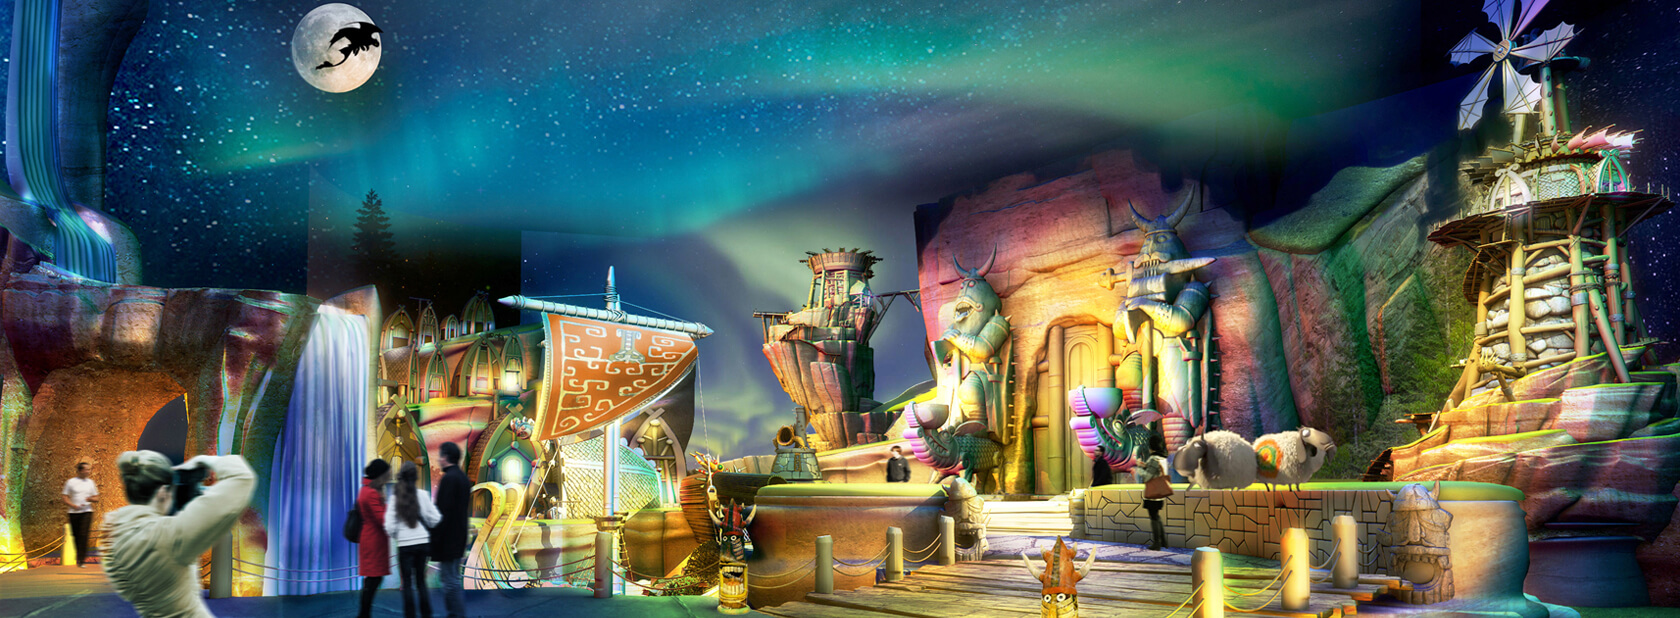 Dubai theme park debuts how to train your dragon themed land how to train your dragon land the dubai theme park has opened this newest land based on the dreamworks animated film the new land will eventually ccuart Gallery